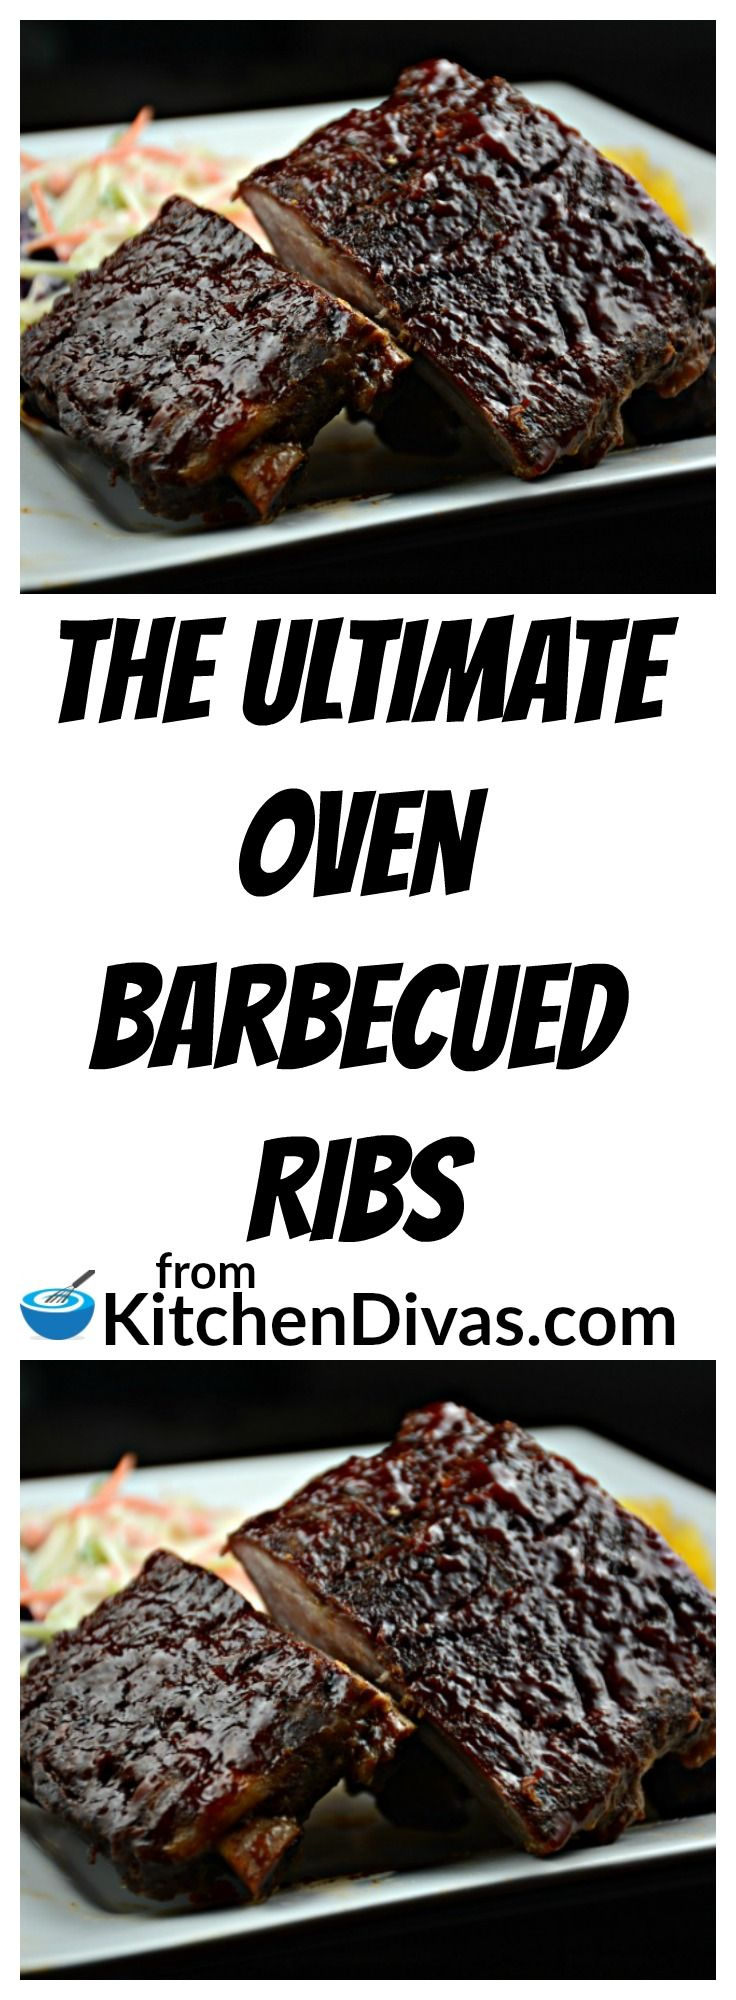 We are a rib family and we love ribs. This recipe for our Ultimate Oven Barbecued Ribs is our favorite and the one we make most often. They take a bit of time to prepare but worth every second. This method is key to delicious, fall of the bone ribs, every time.